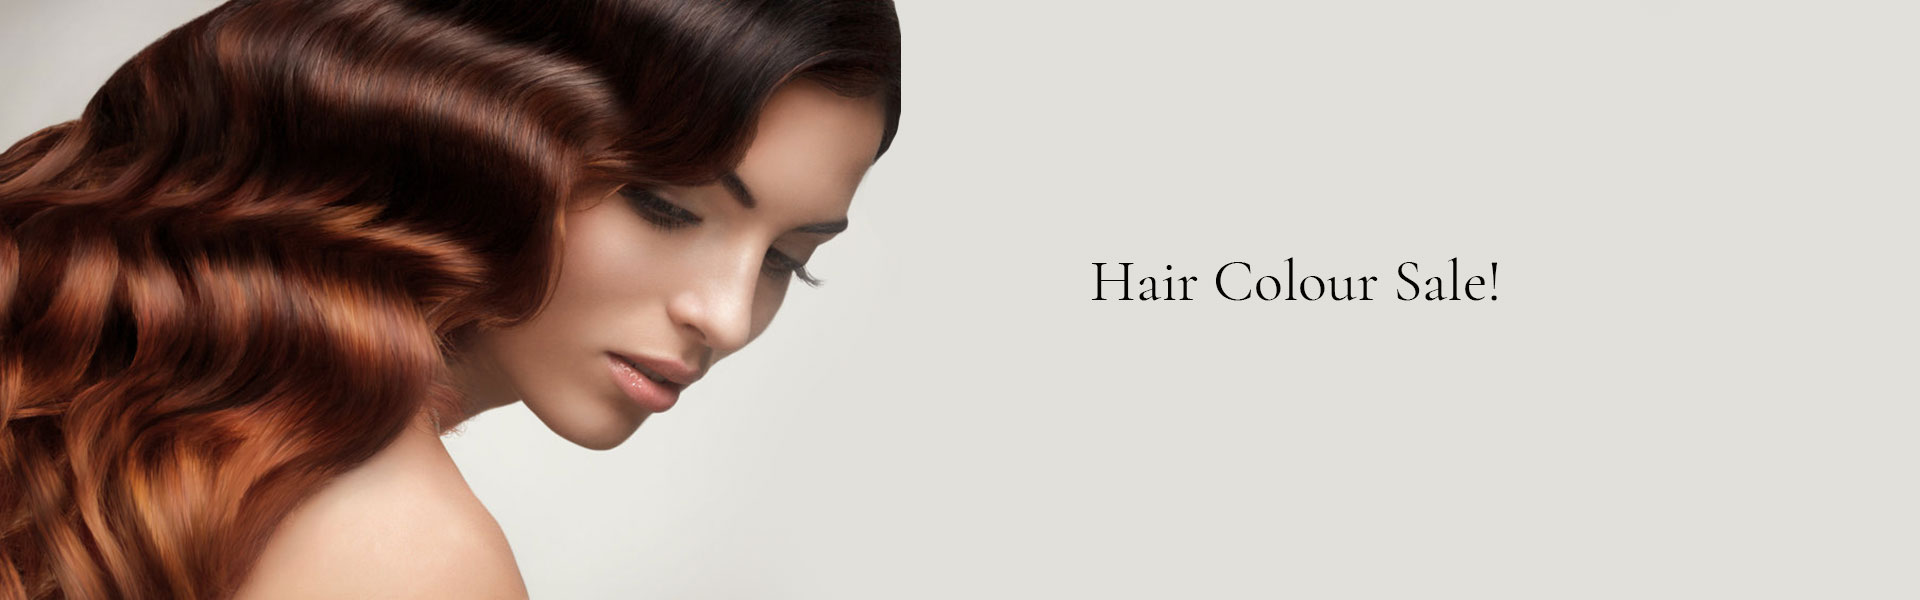 Hair Colour Sale Wantage & Didcot Hairdressers